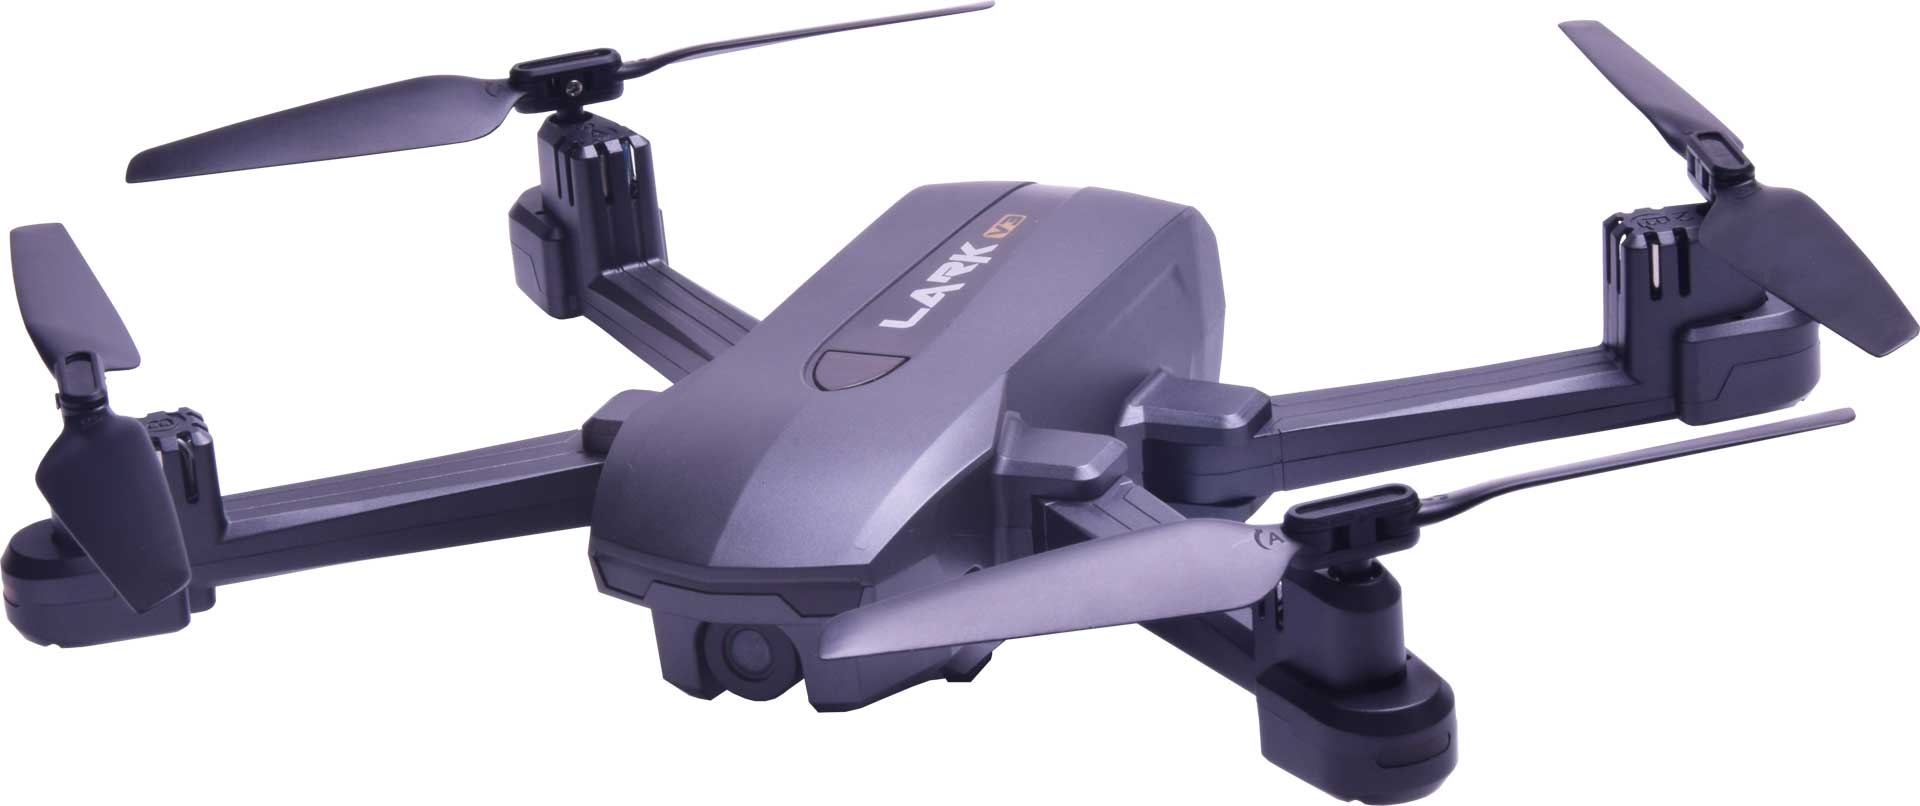 DRIVE & FLY MODELS SkyWatcher Lark 4K V3 - GPS